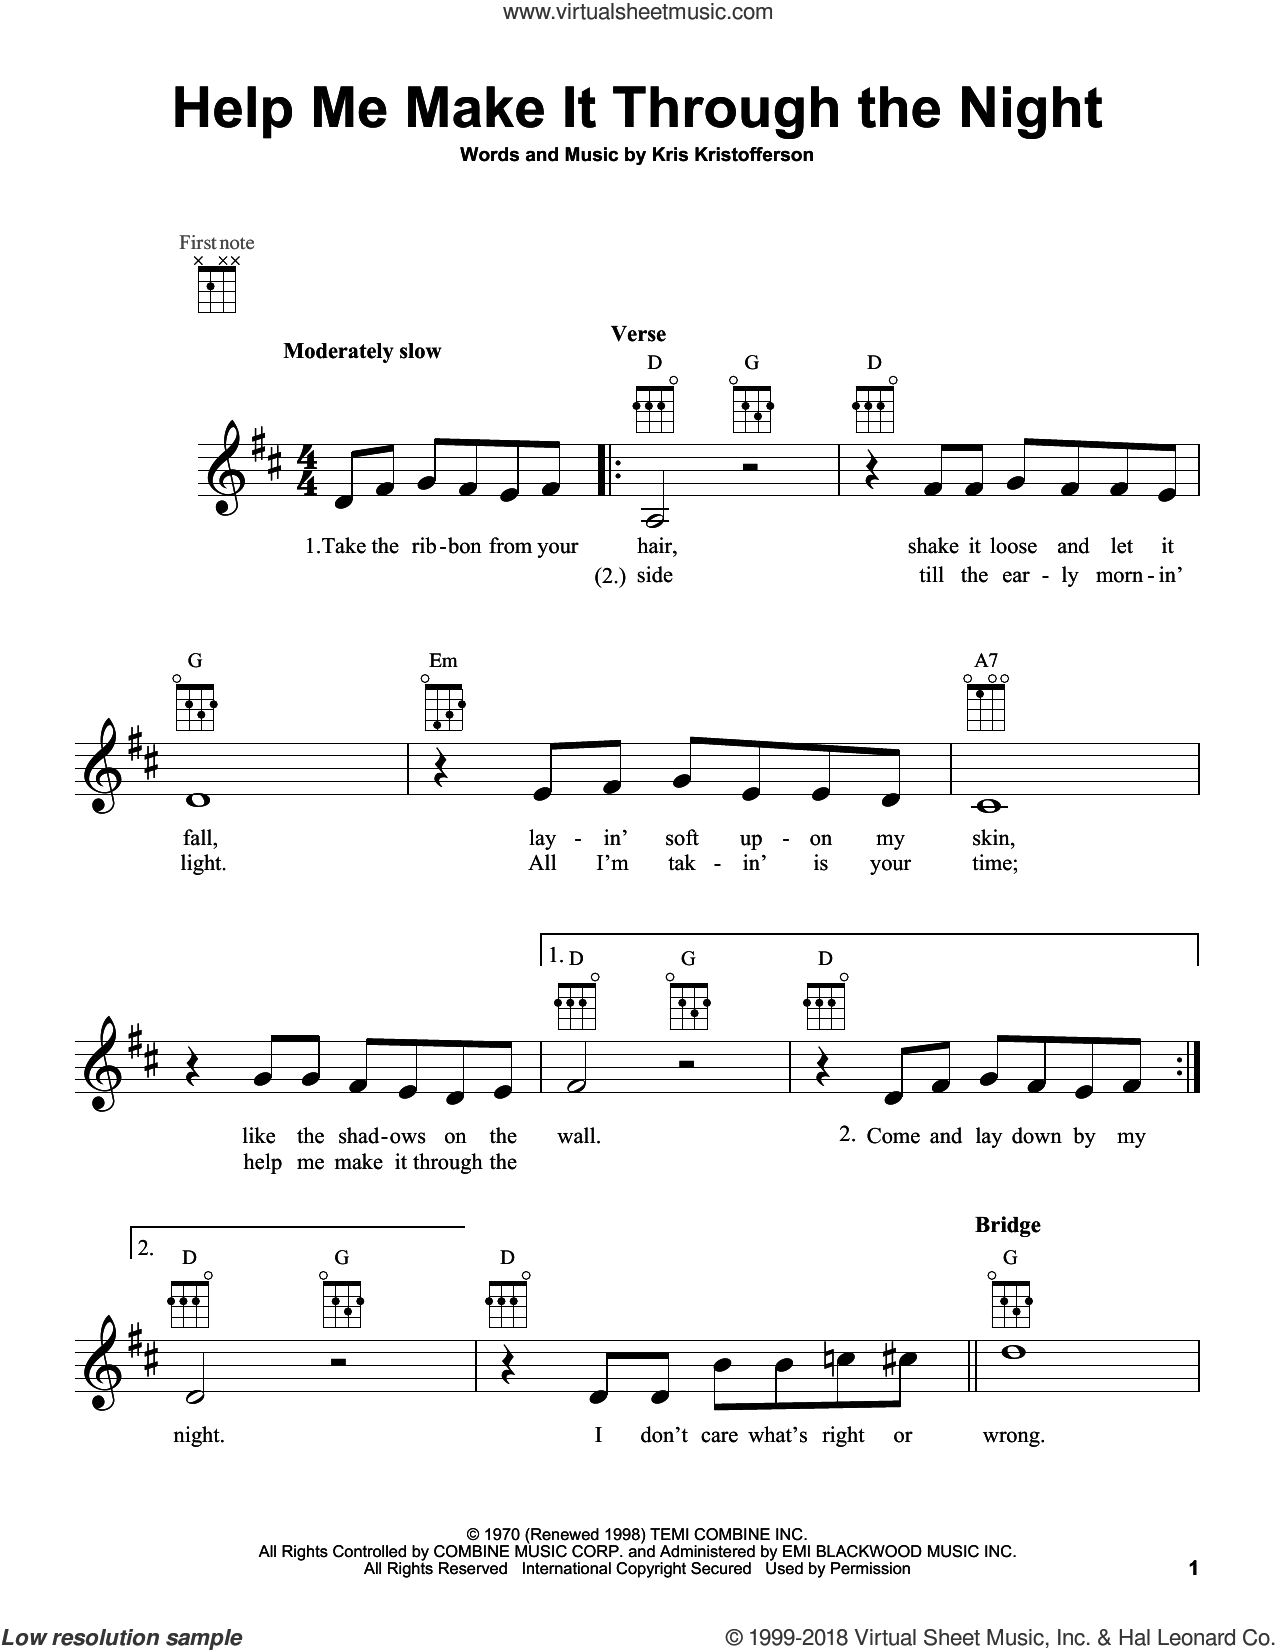 Help Me Make It Through The Night sheet music for ukulele by Kris Kristofferson, Elvis Presley, Sammi Smith and Willie Nelson. Score Image Preview.